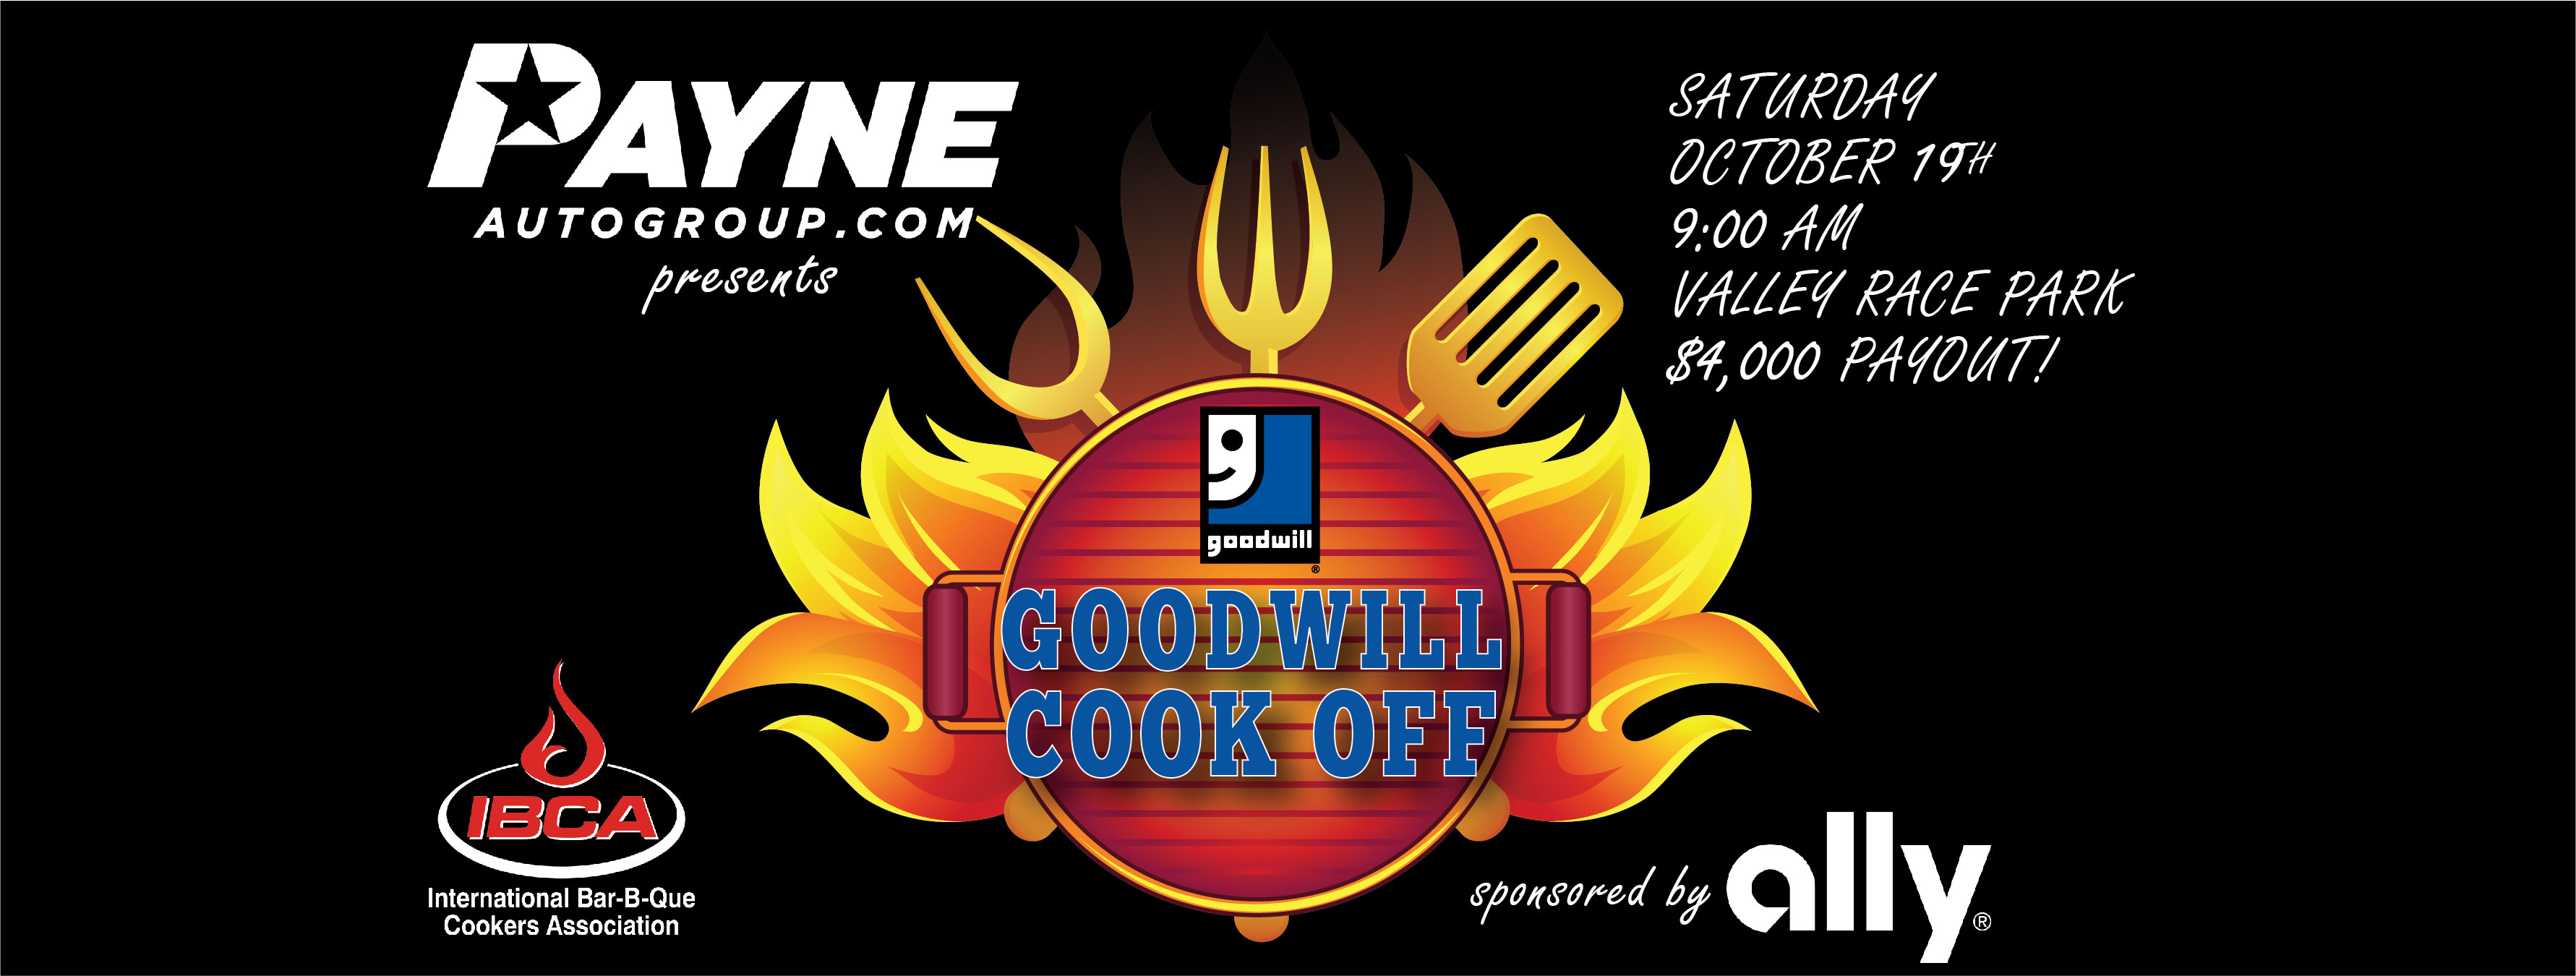 Payne Auto Group >> 6th Annual Goodwill Cook Off Presented By Payne Auto Group